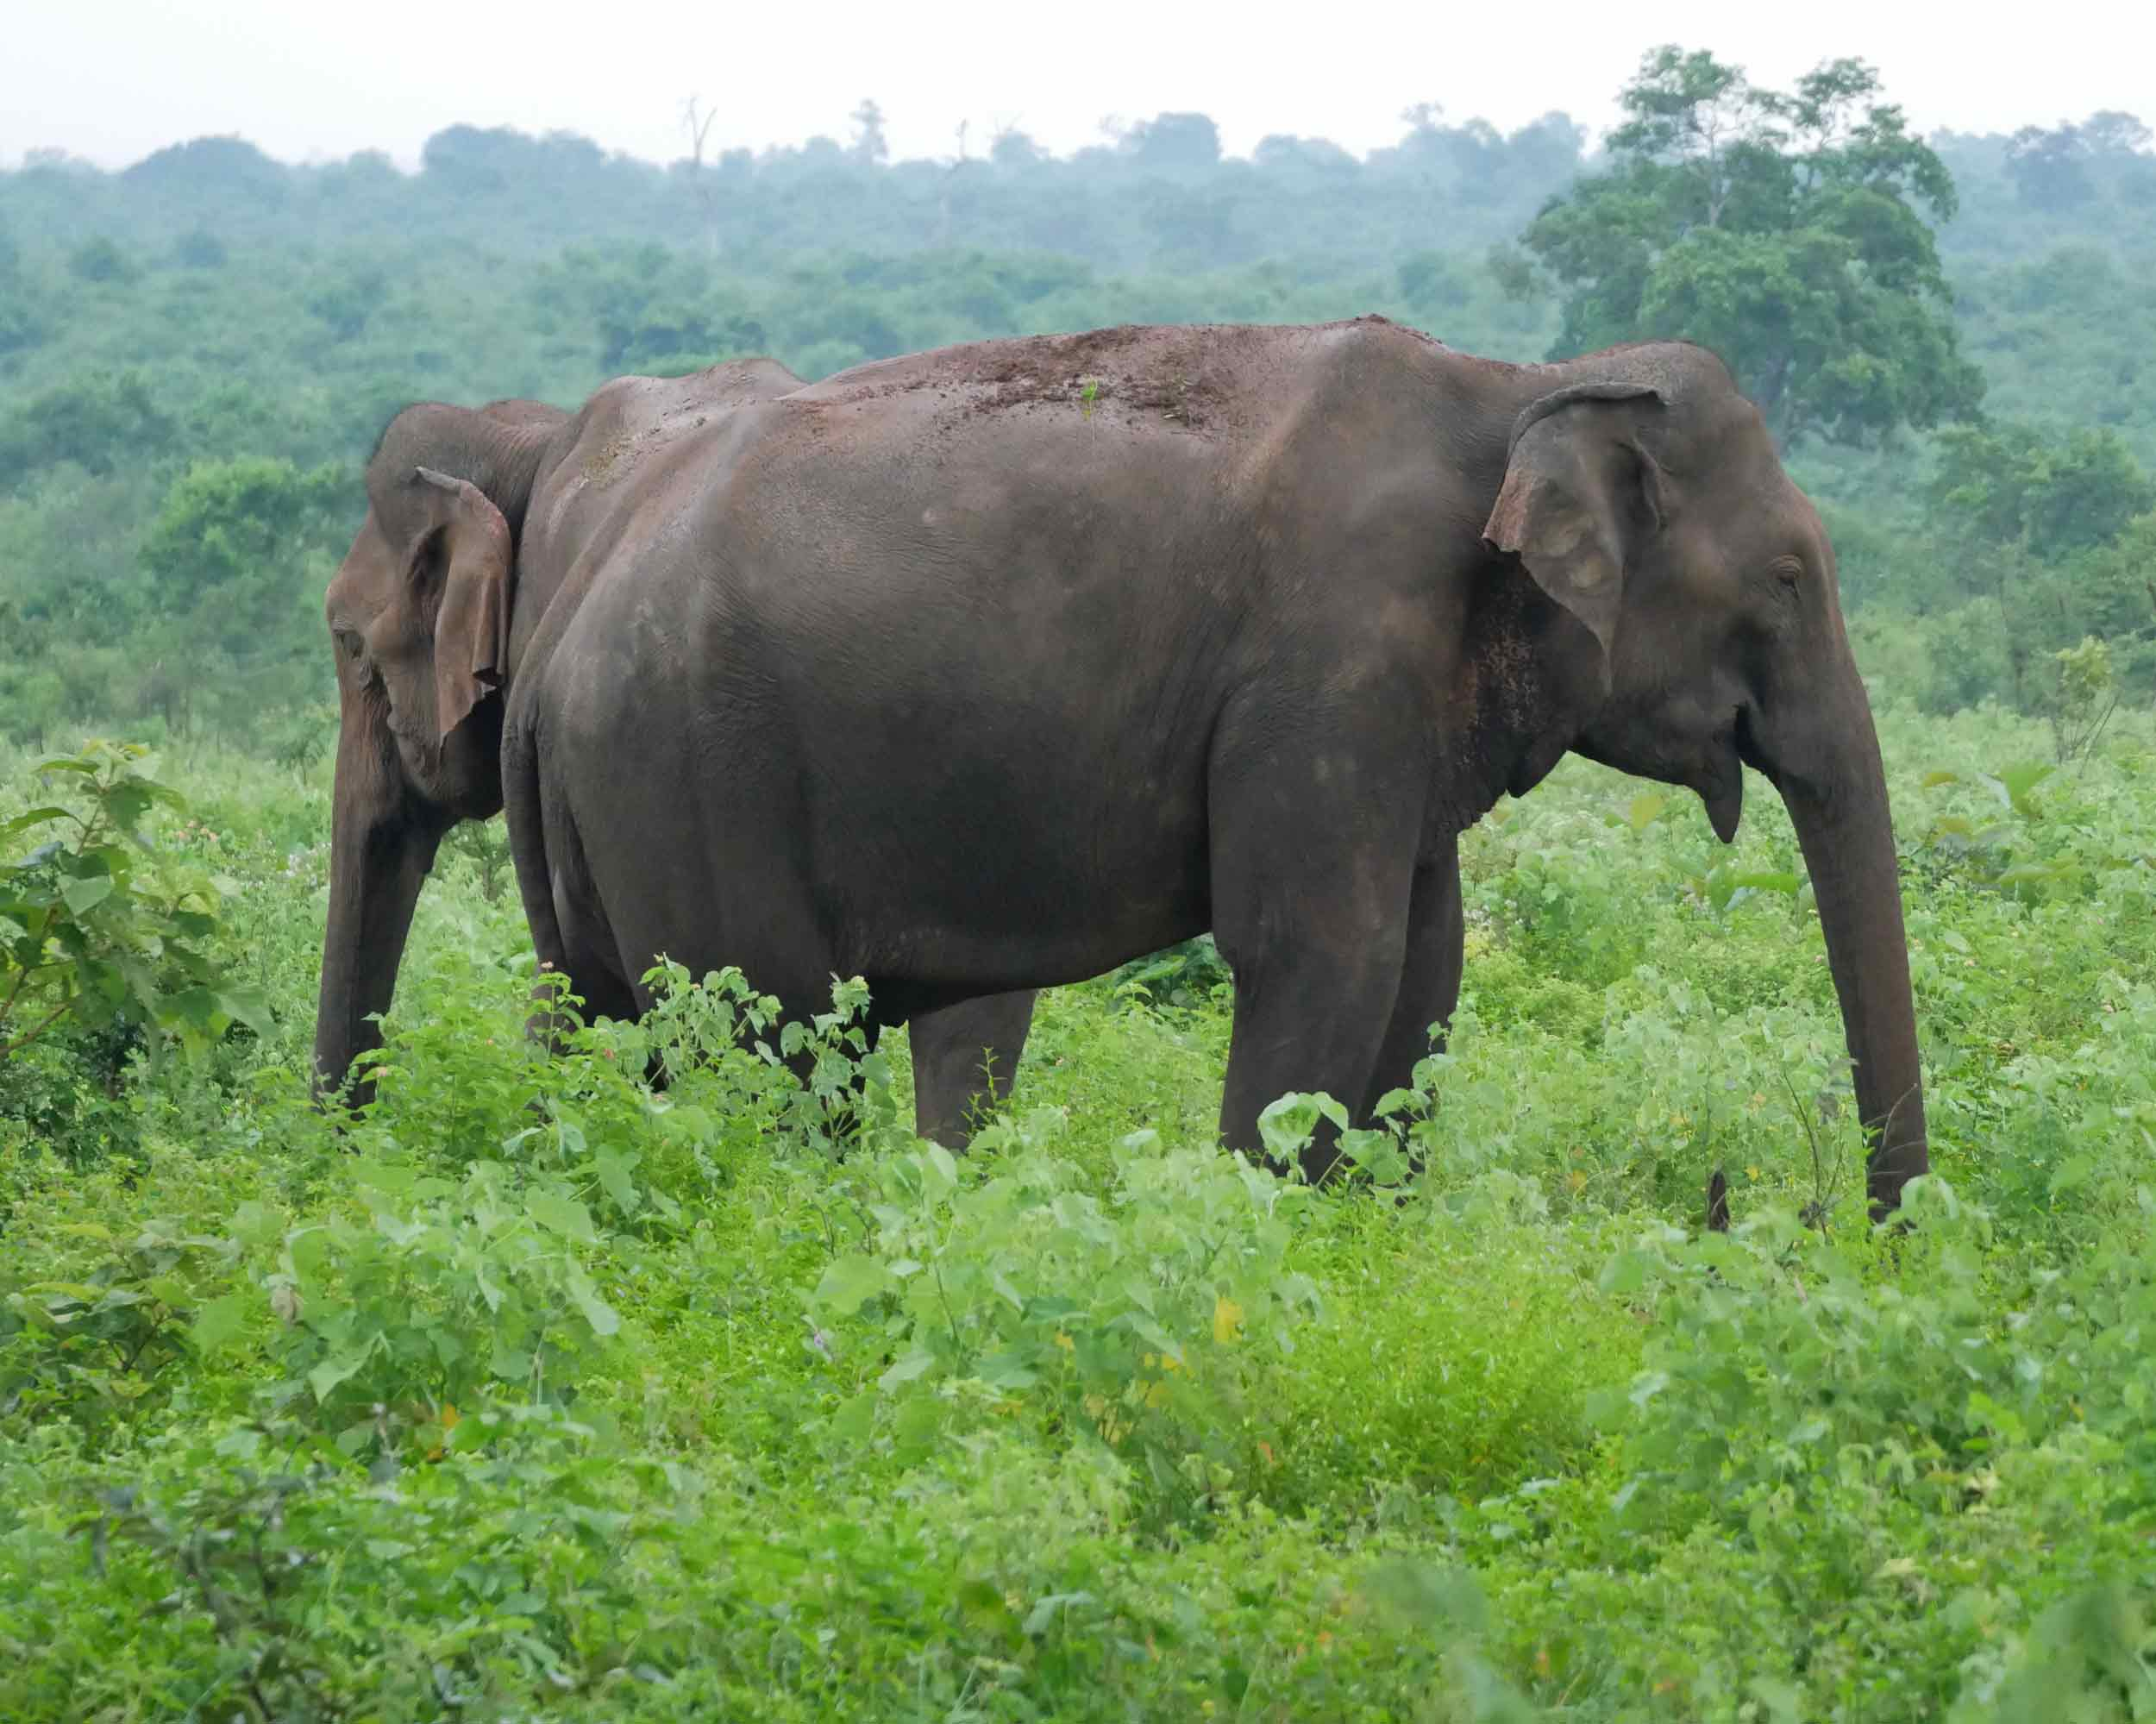 Safari in Udawalawe National Park brought us up close to the magnificent Sri Lankan elephants (Dec 20).